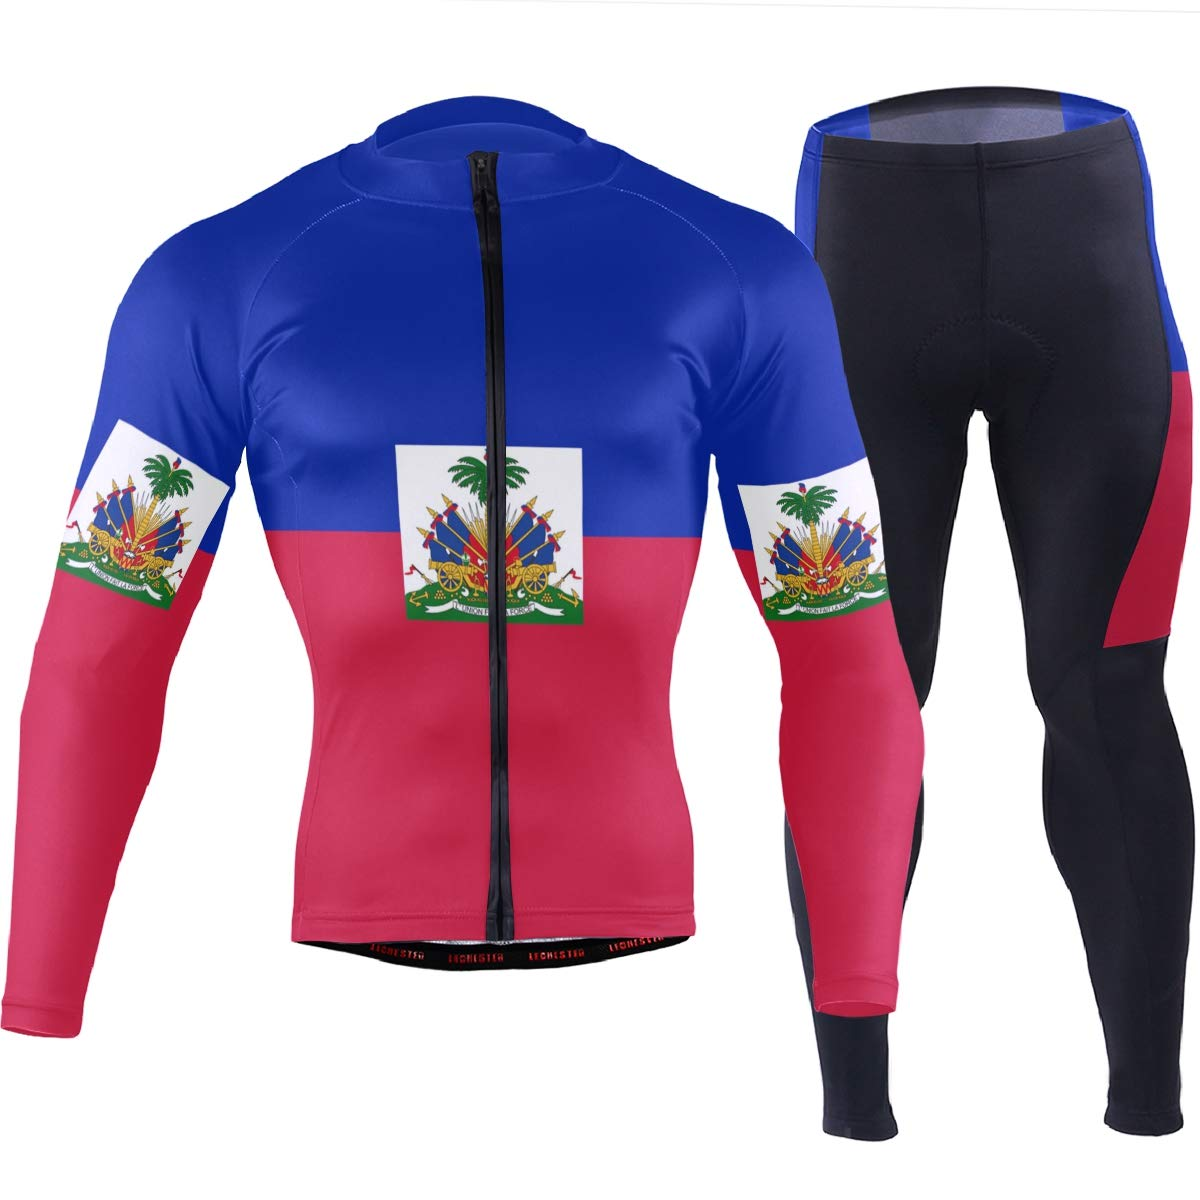 CHINEIN Men's Cycling Jersey Long Sleeve with 3 Rear Pockets Suit Haiti Flag by CHINEIN